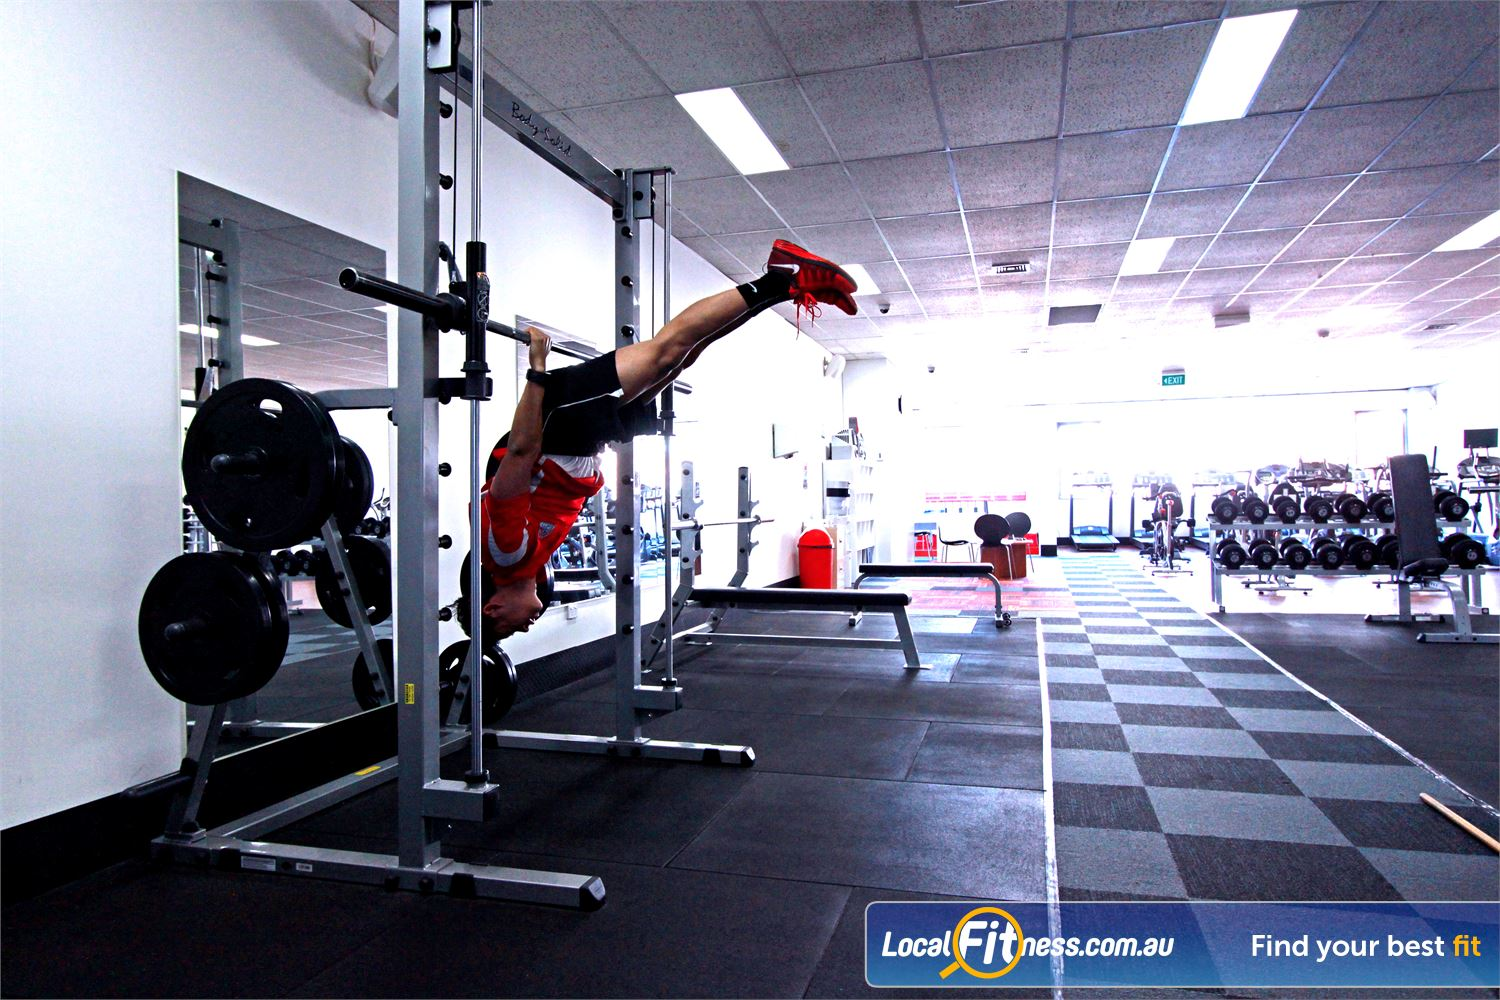 Carlton Fitness Gym Near Fitzroy North Get into functional training at Lean For Life Carlton.